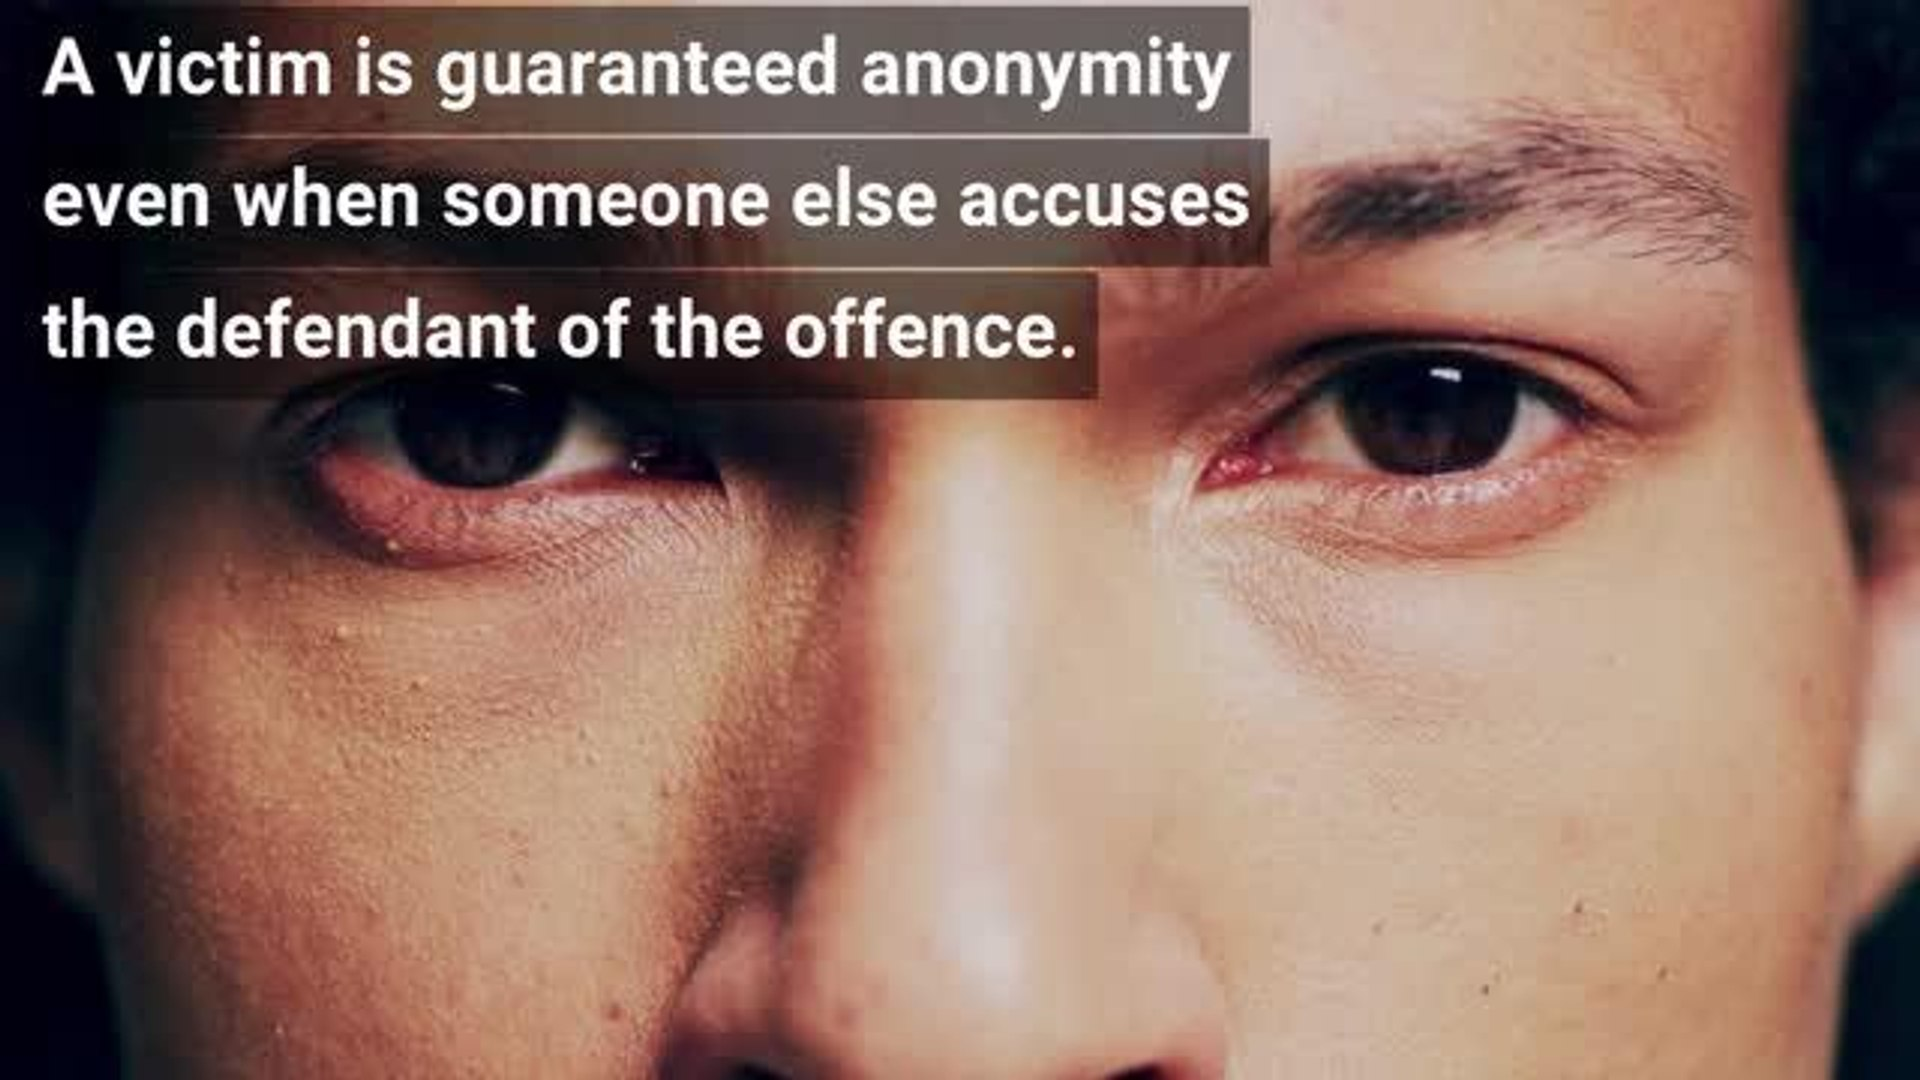 Video explainer of why victims of sexual assault are granted anonymity